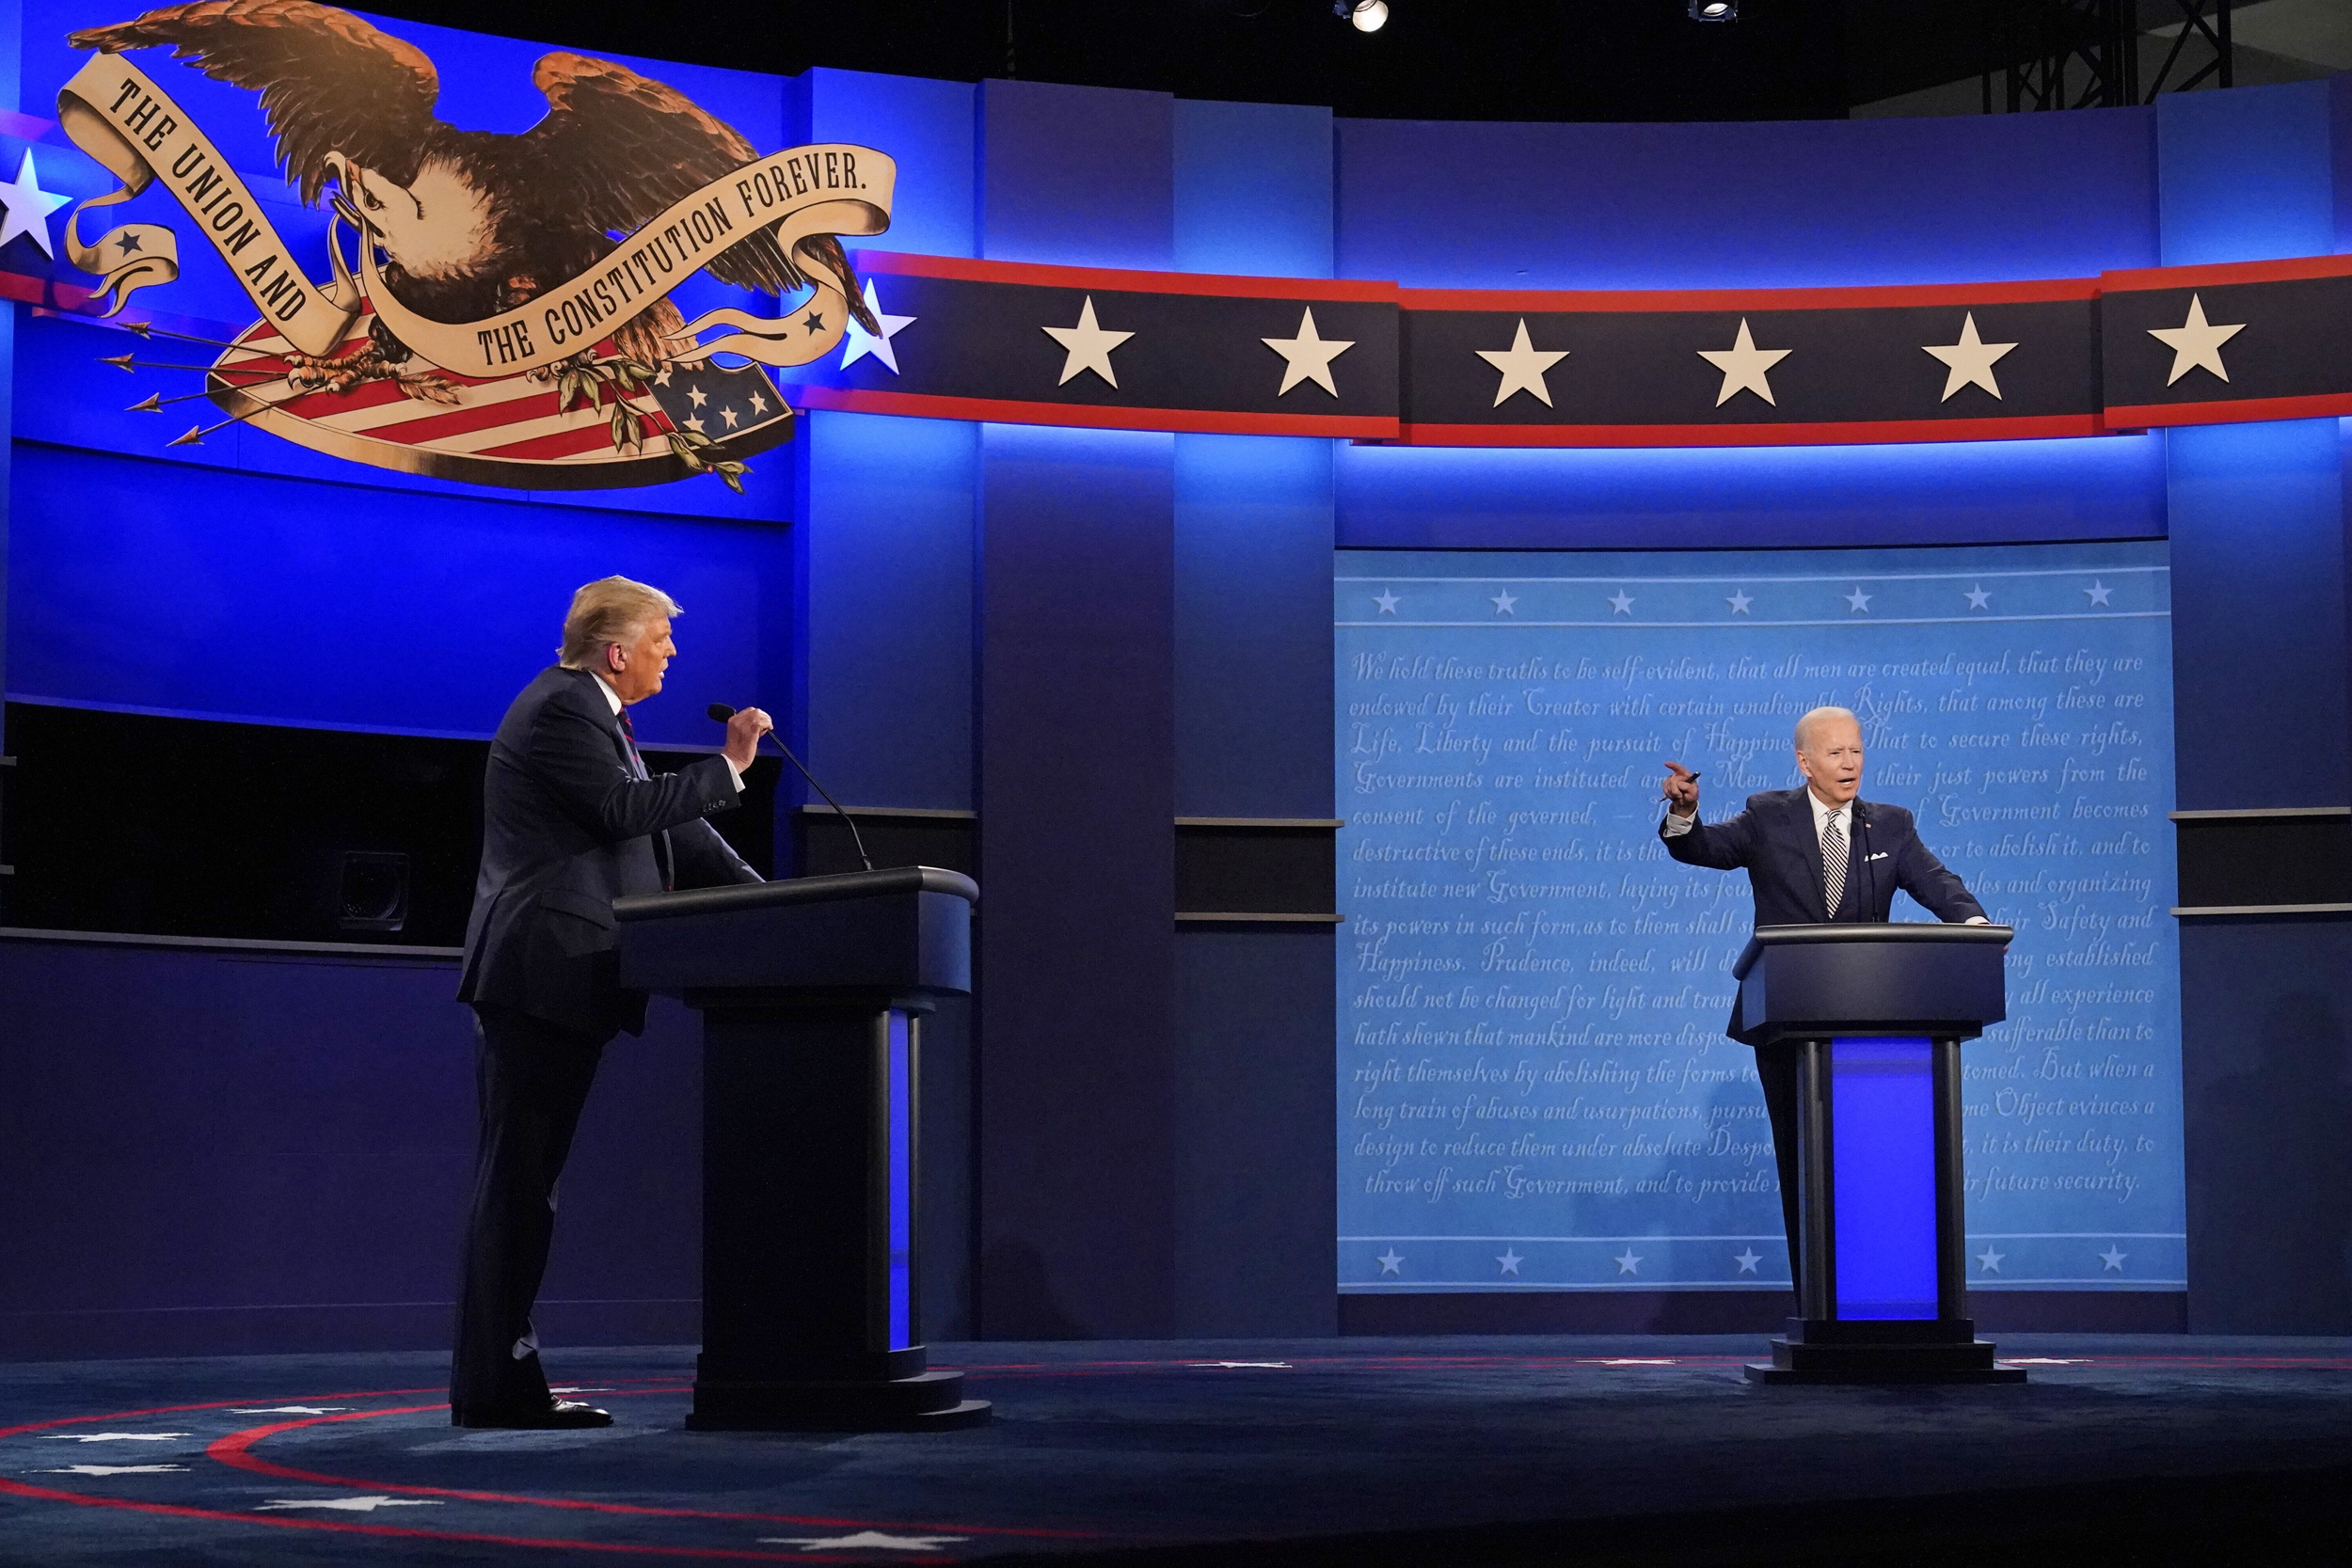 Trump and Biden will have mics cut during opponent's answers